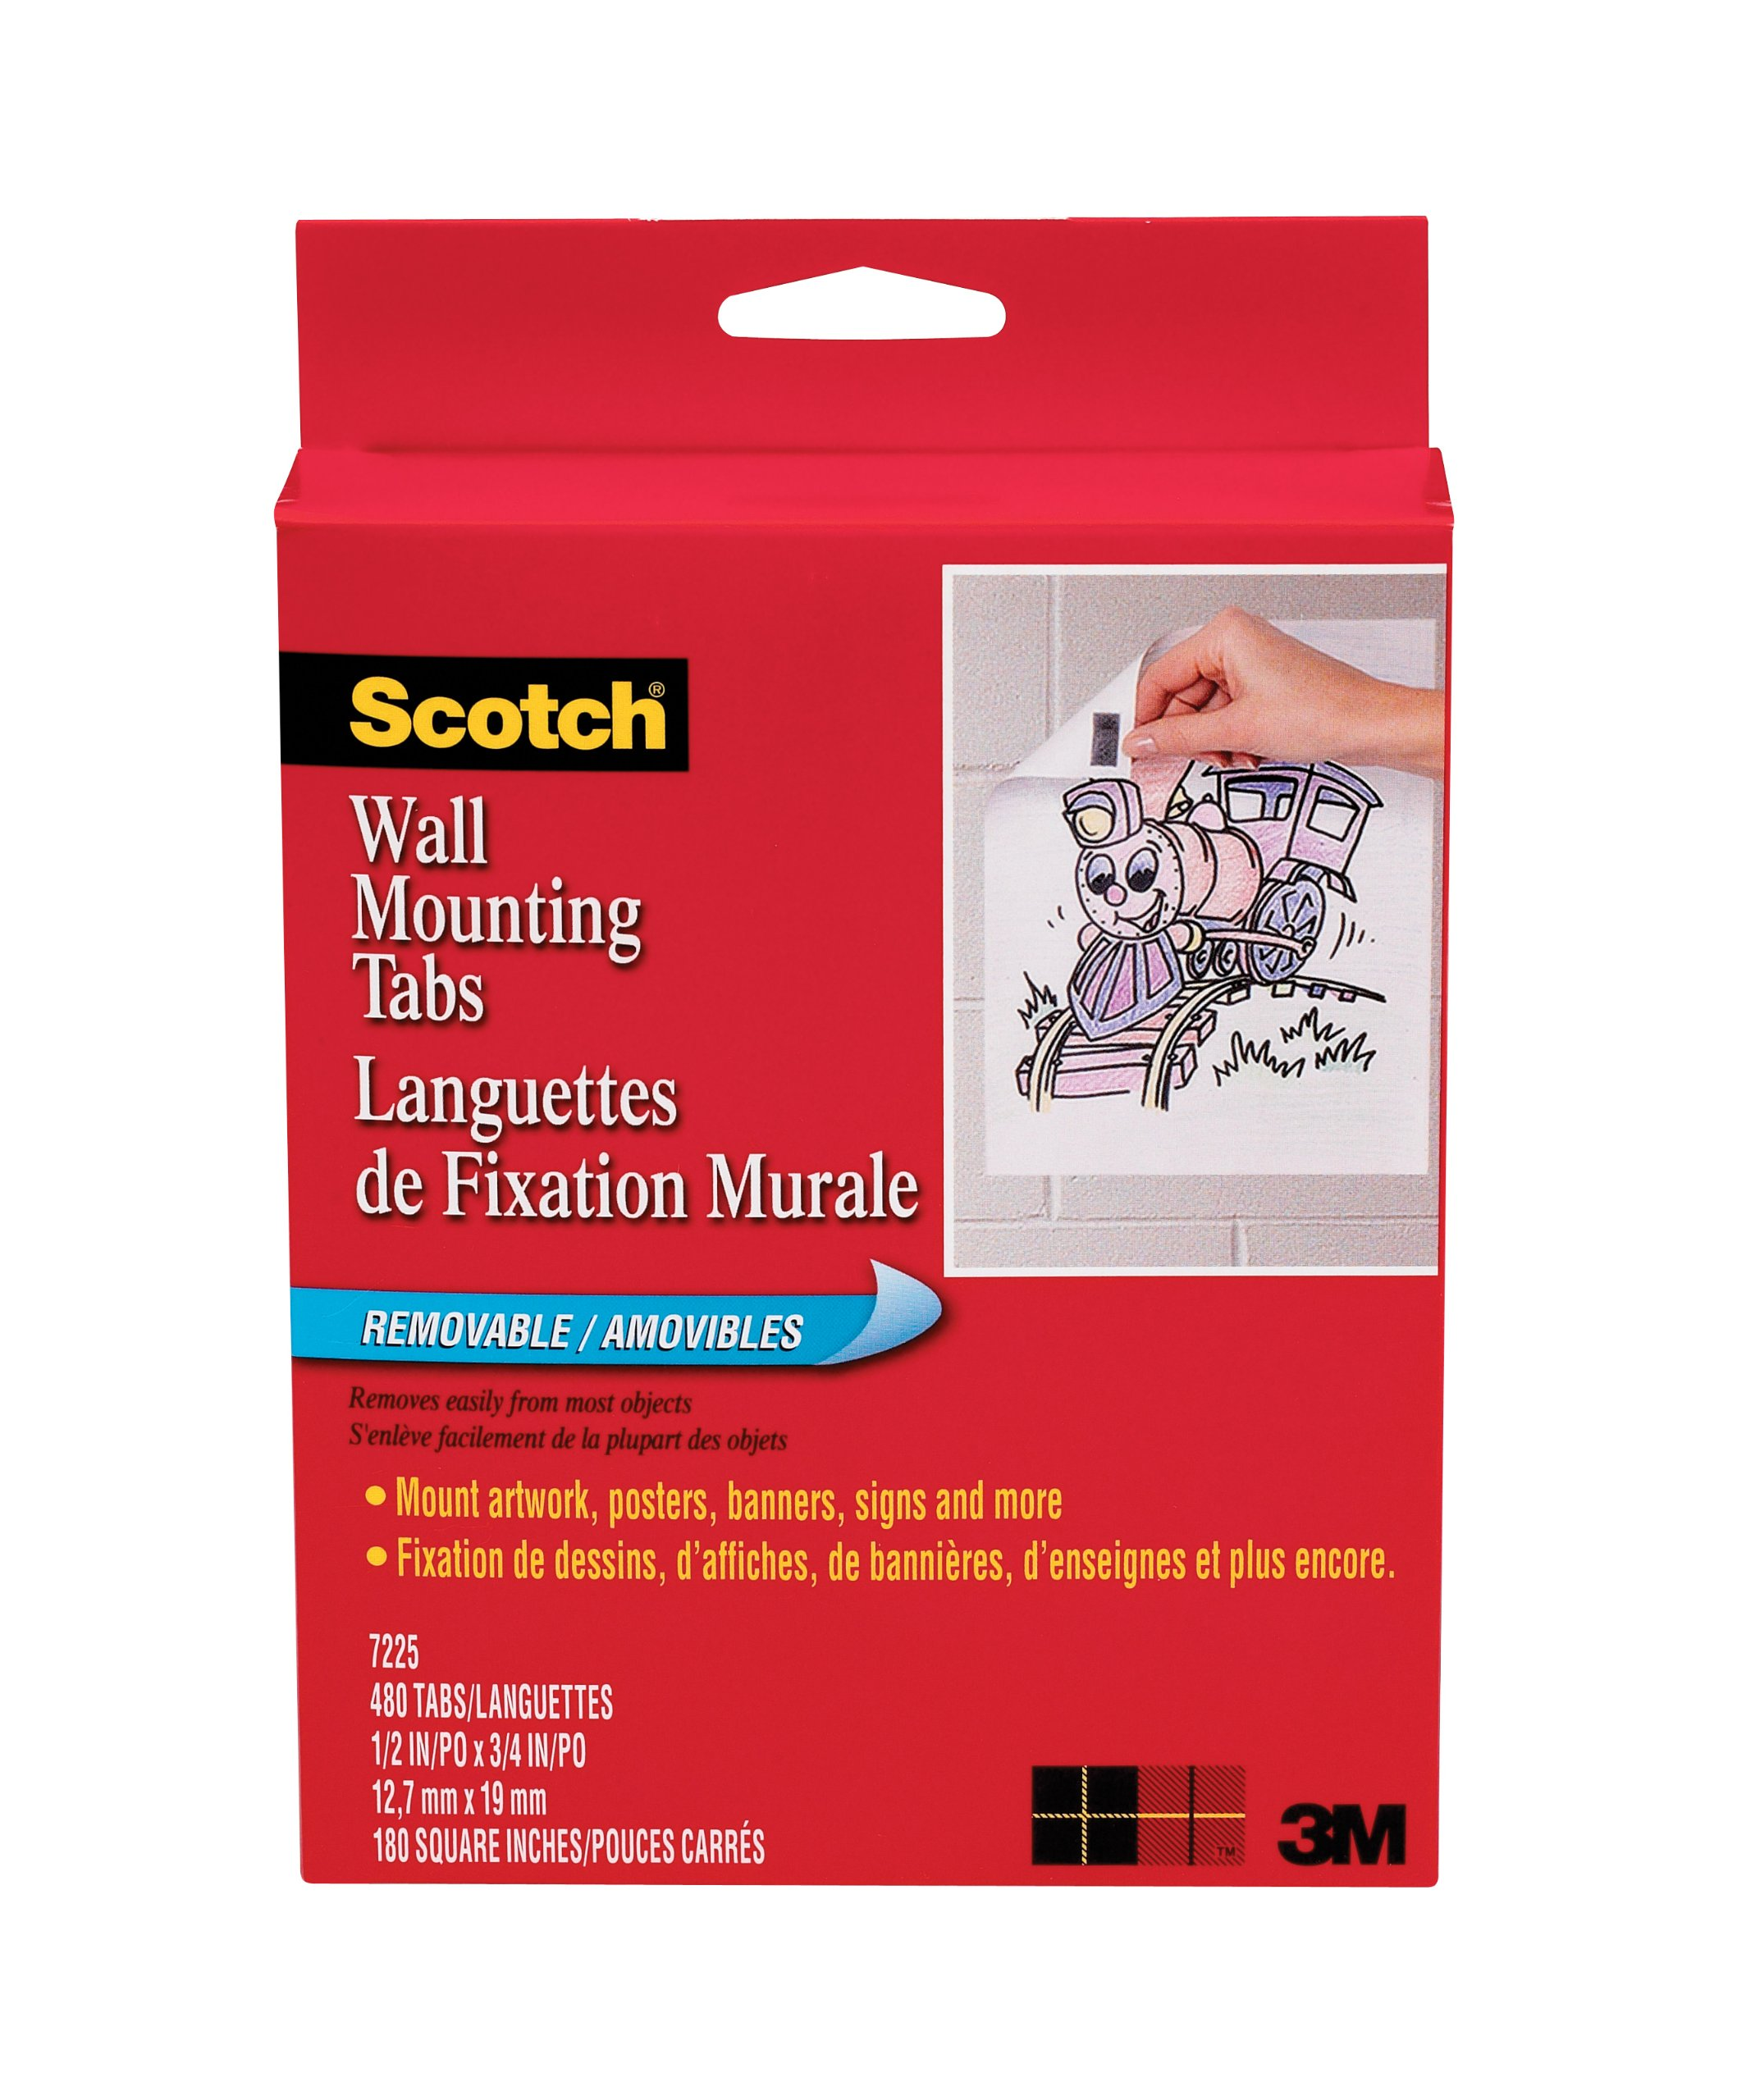 Scotch Wall Mounting Tabs 7225, 1/2-inch x 3/4 Inches, 480 Tabs per Box